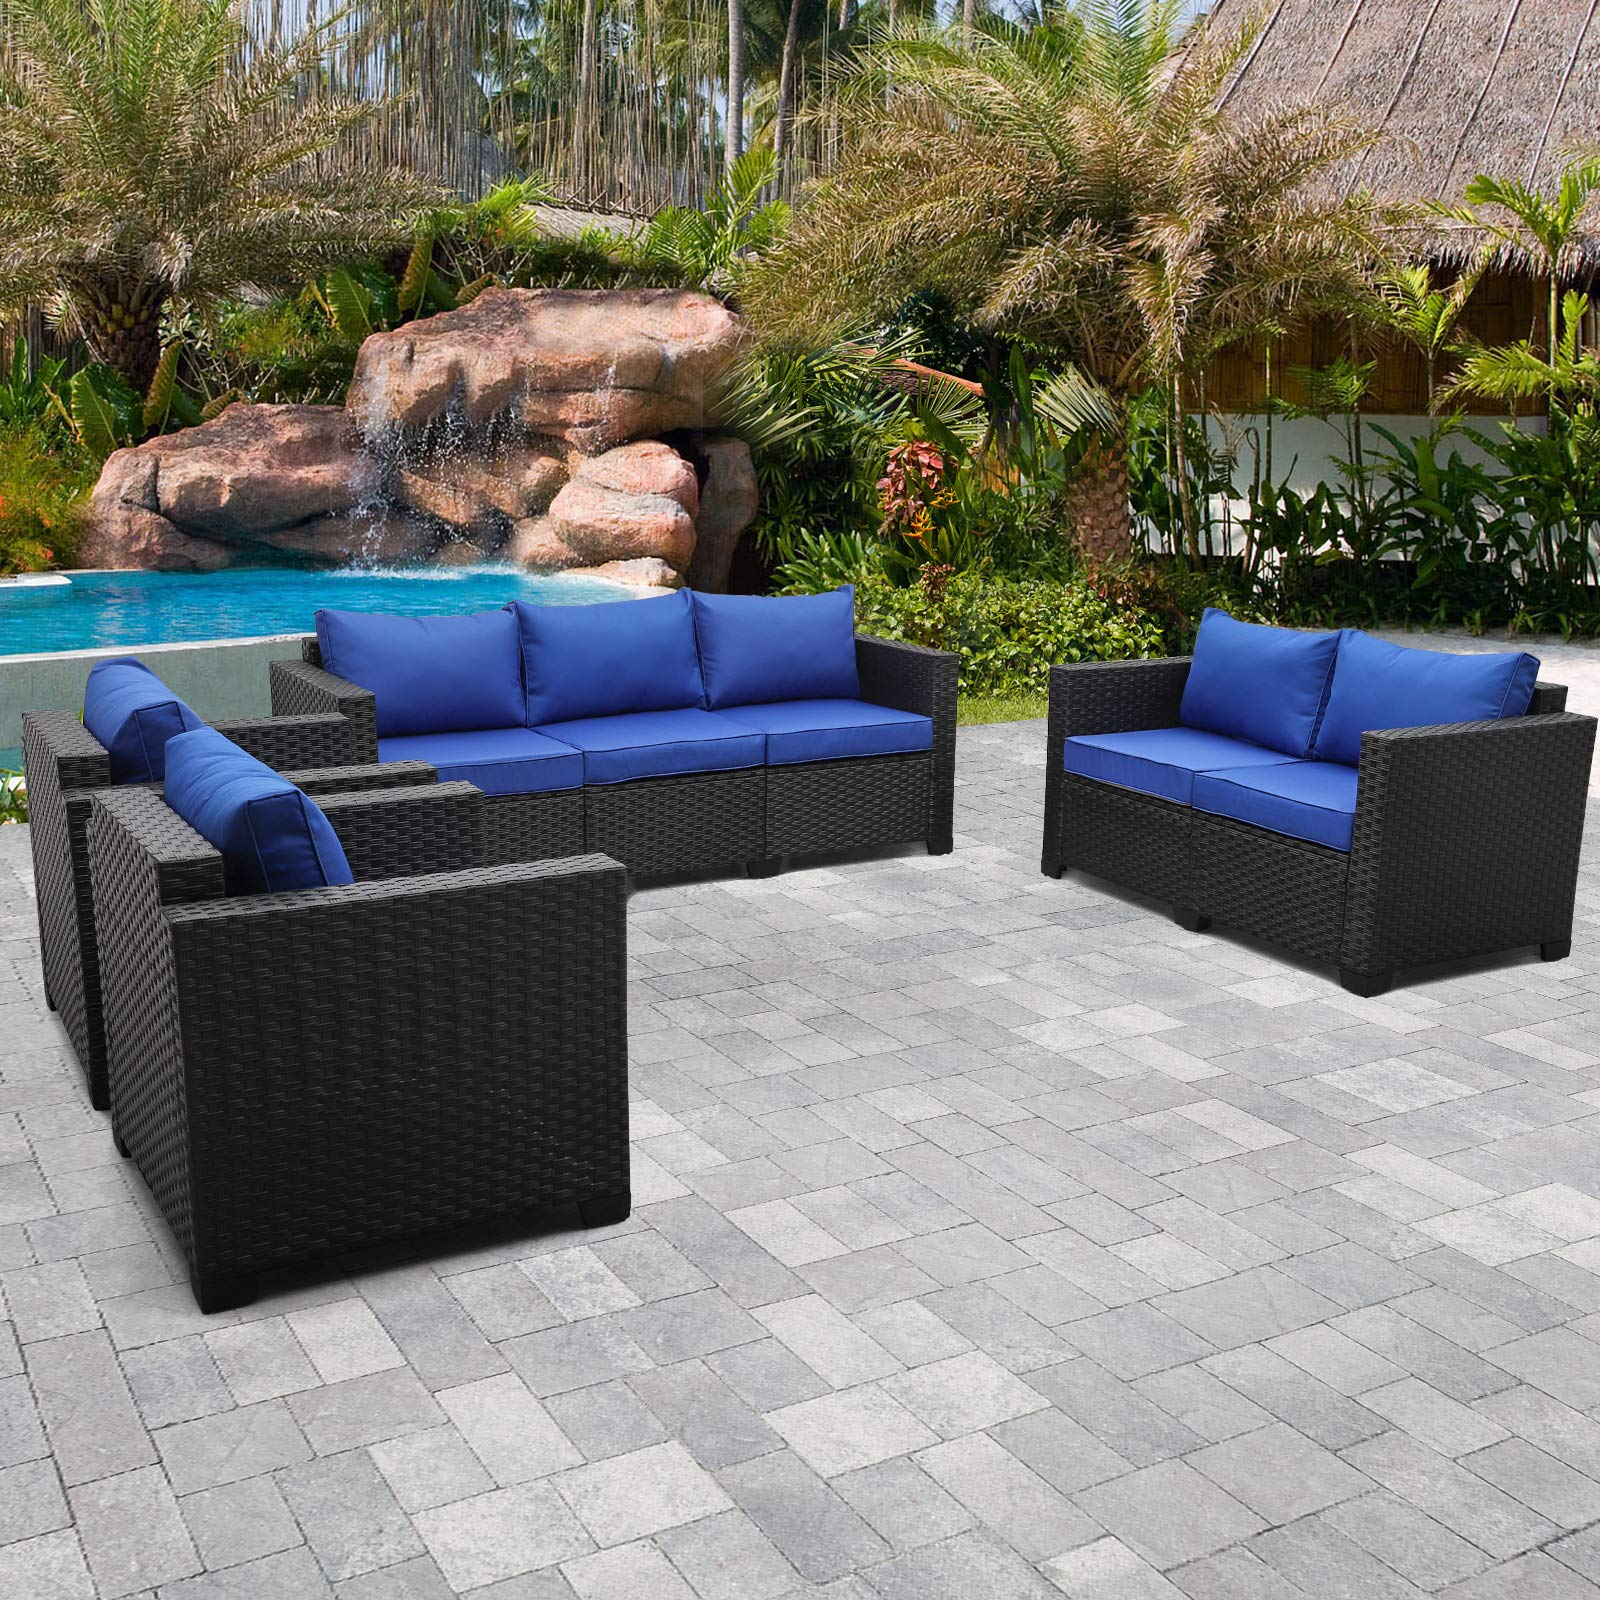 Rattaner Patio Furniture Sectional Sofa 4 Pieces, OutdoorWickerFurniture Couch Set with Cushions and Furniture Covers (R...